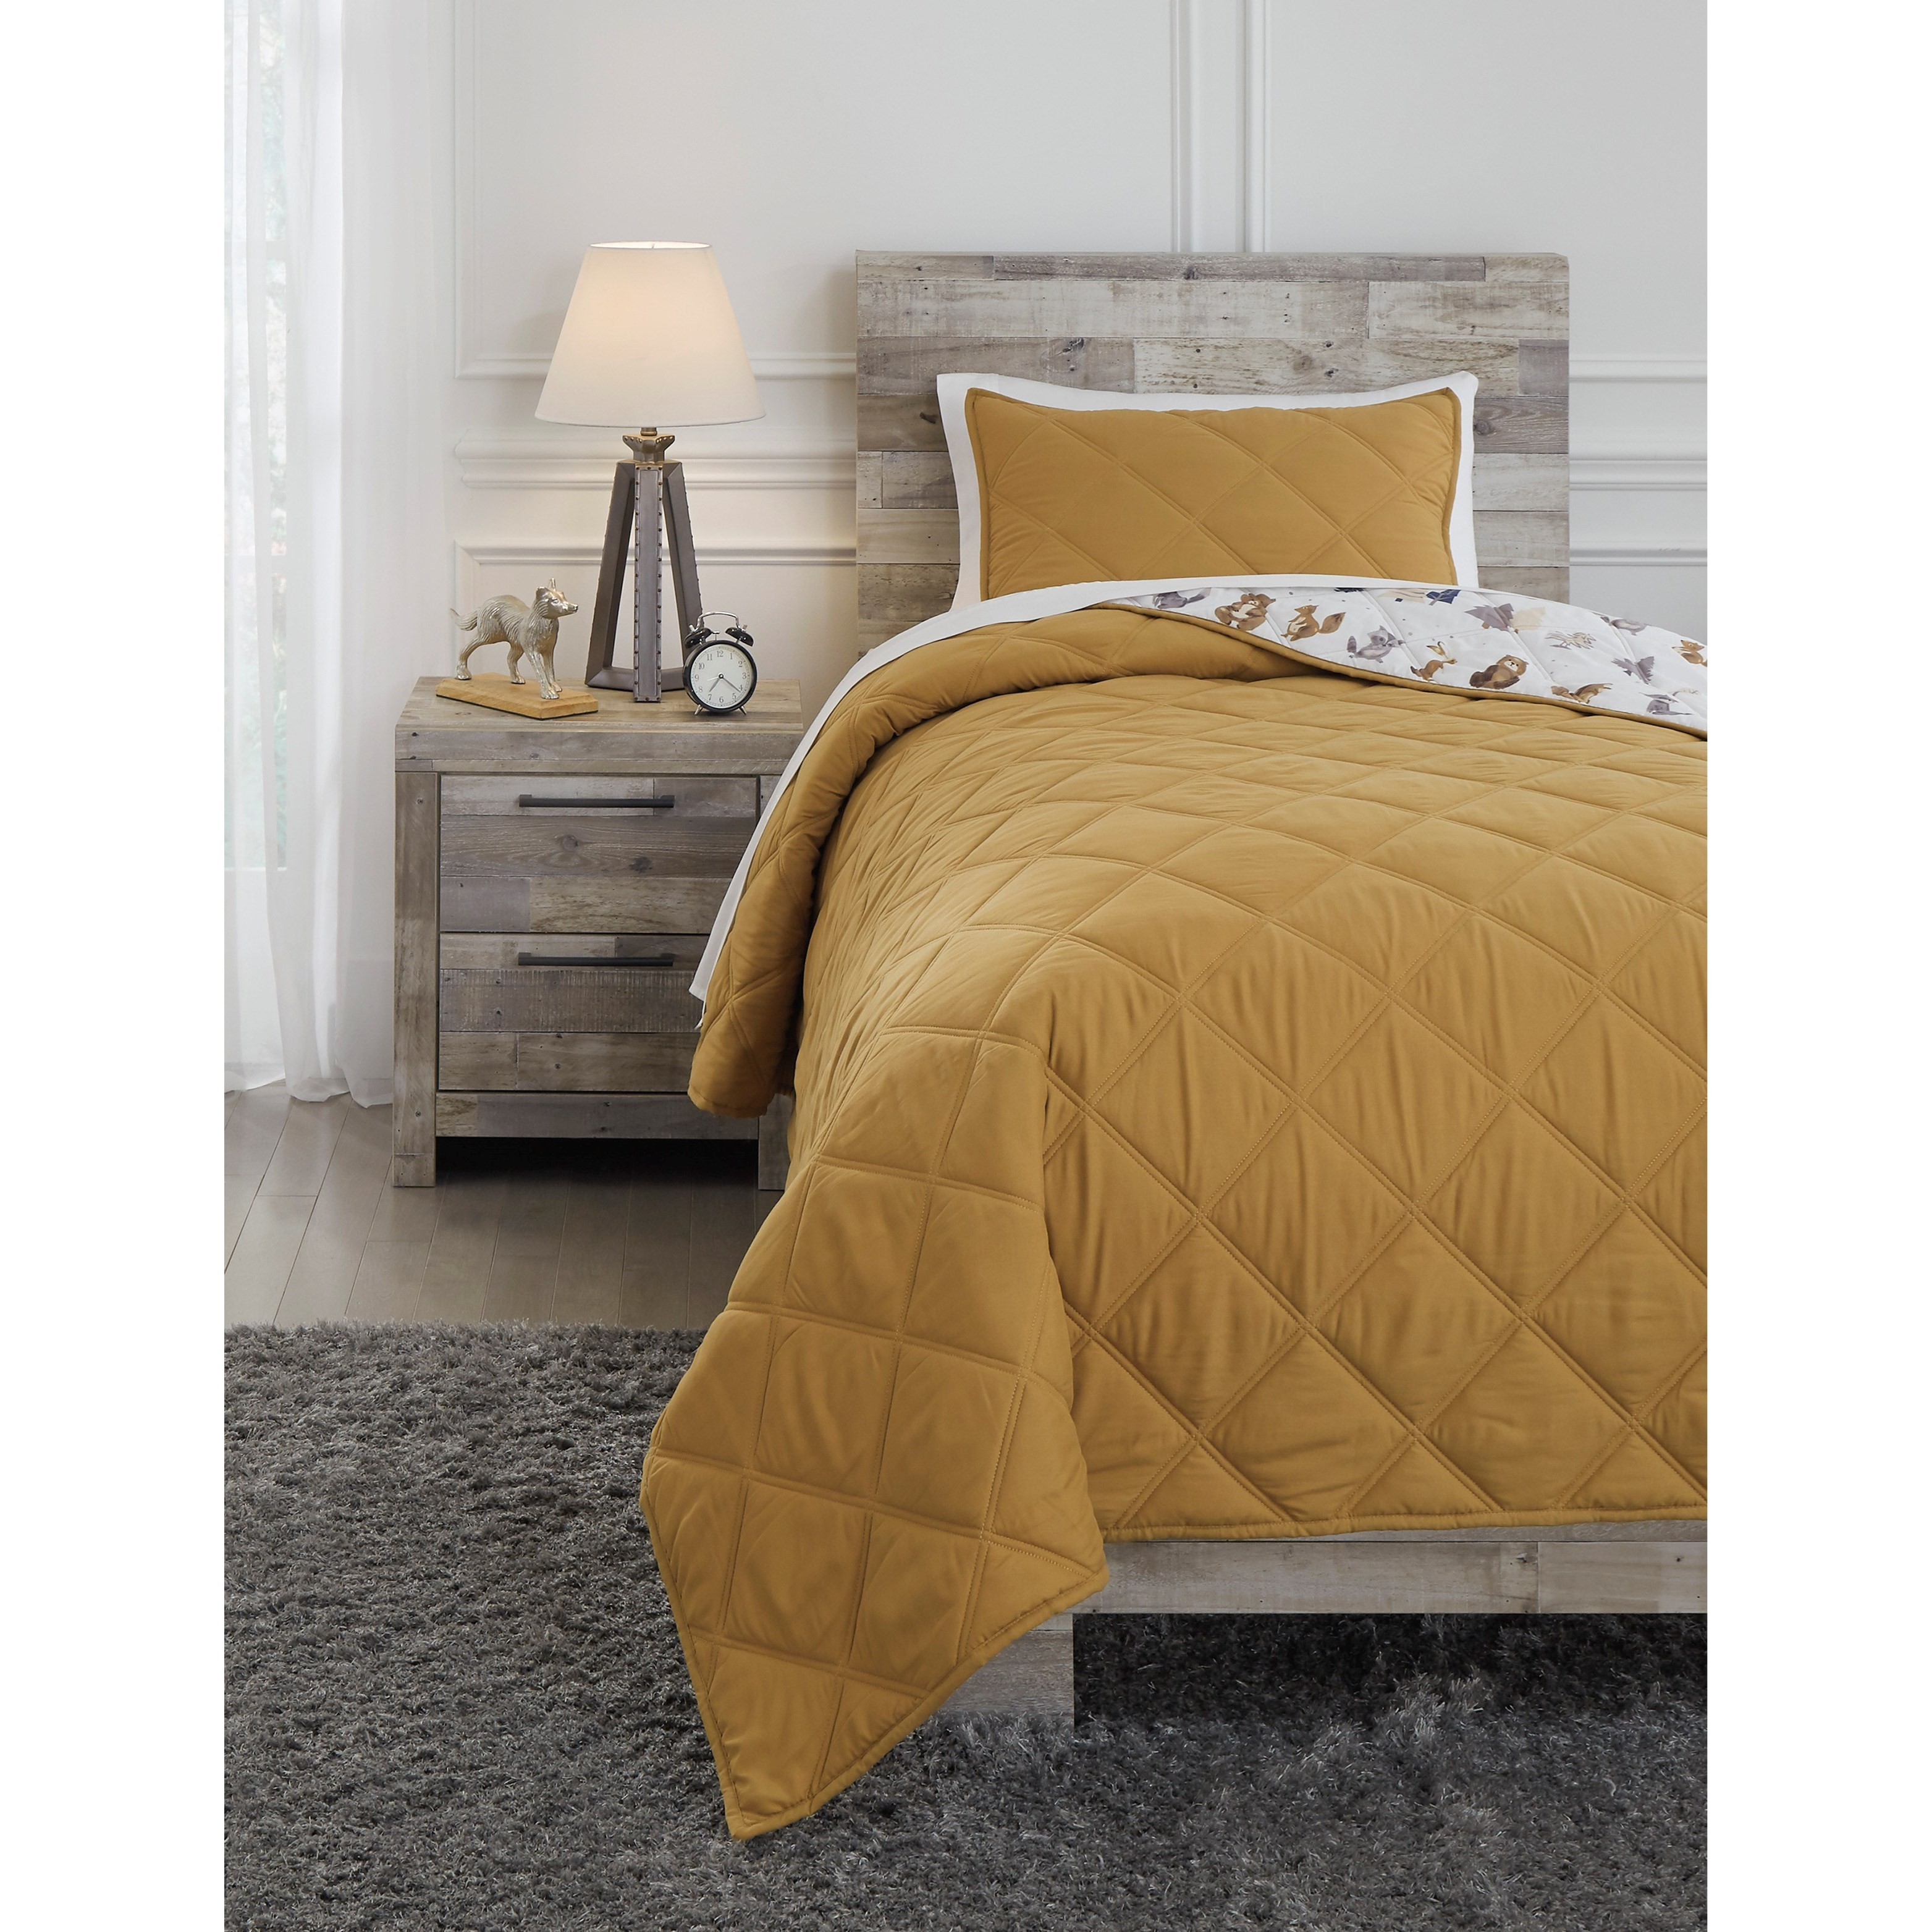 Bedding Sets Twin Cooperlen Golden Brown Quilt Set by Signature Design by Ashley at Rife's Home Furniture